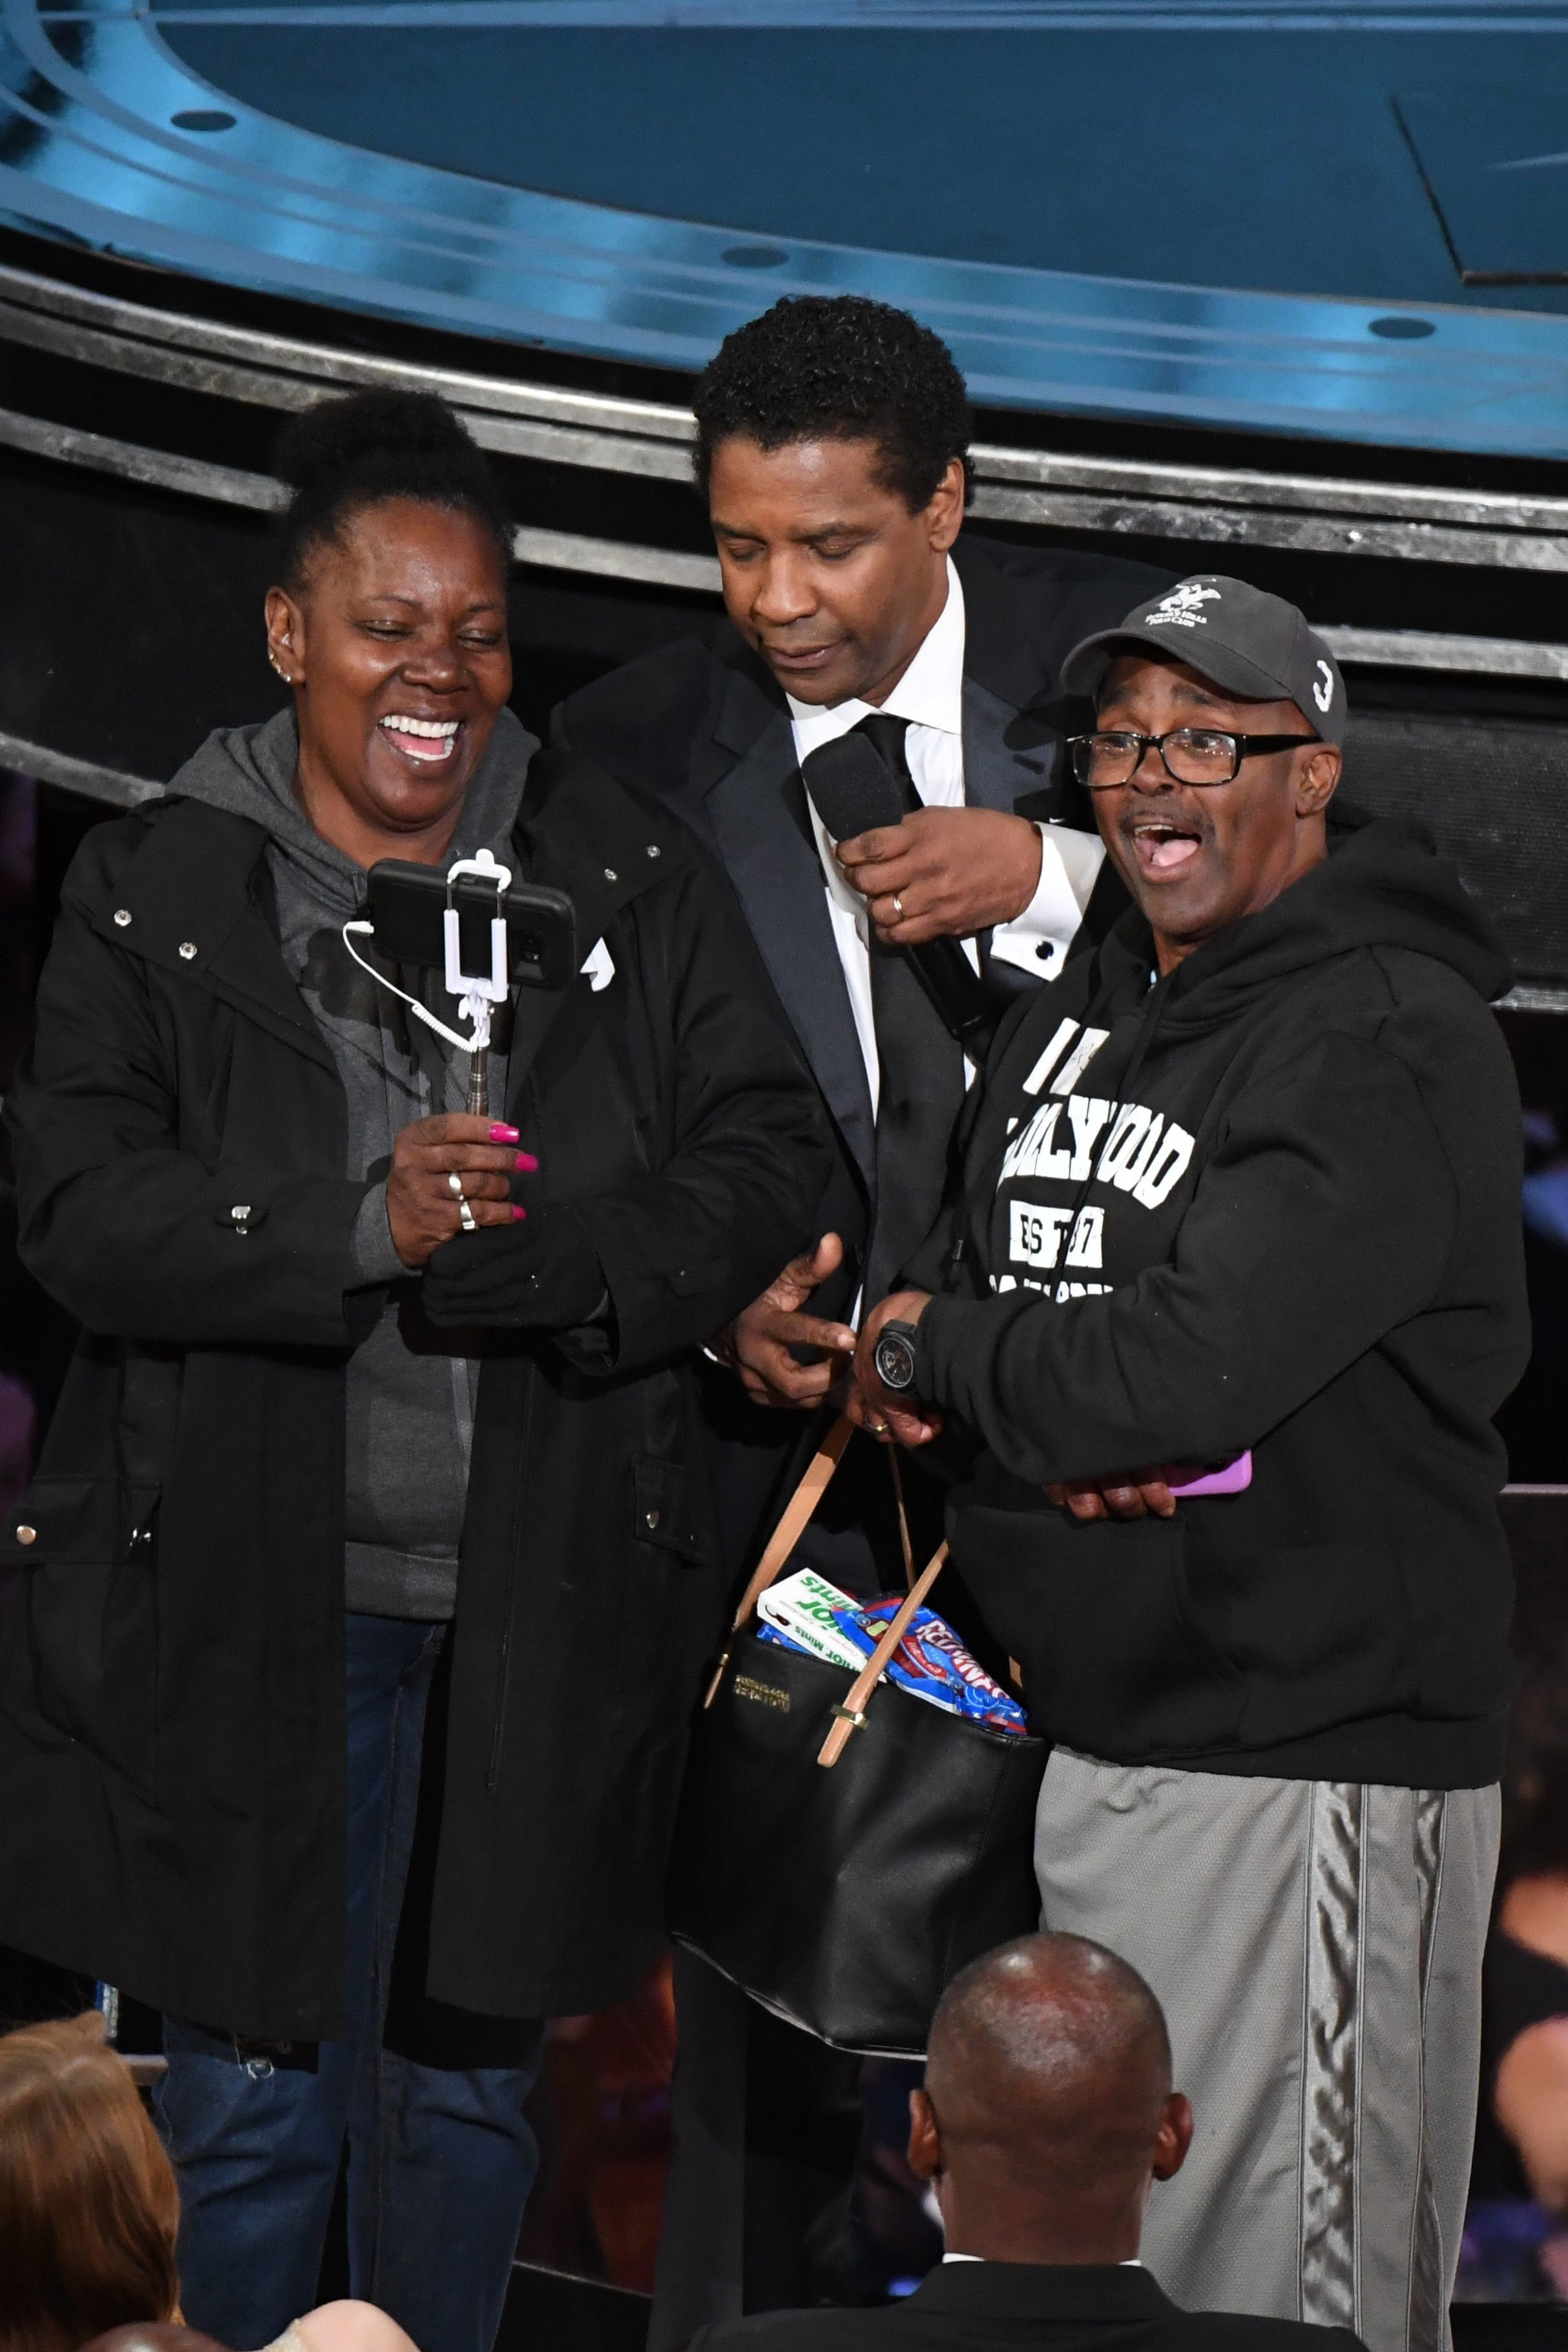 Tourists brought into the Oscars as a surprise meet with nominee for Best Actor in 'Fences' Denzel Washington (C) at the 89th Oscars on February 26, 2017 in Hollywood, California. / AFP / Mark RALSTON        (Photo credit should read MARK RALSTON/AFP/Getty Images)